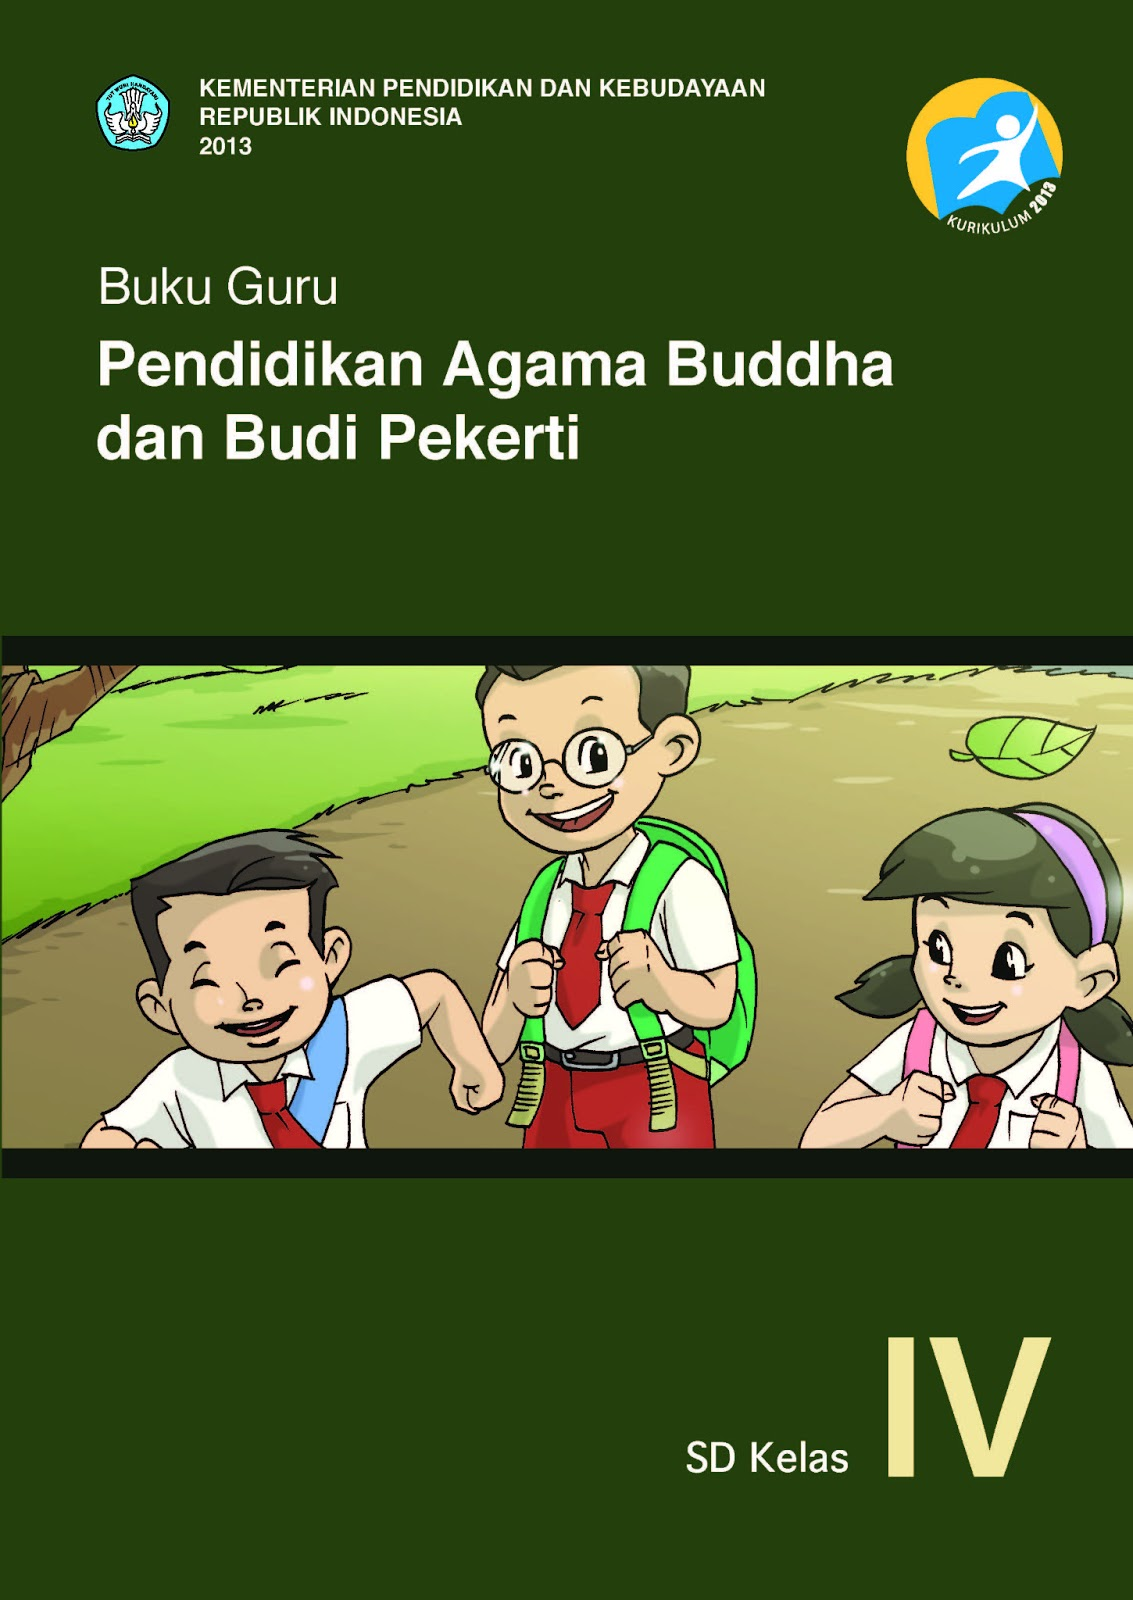 kementerian pendidikan nasional tahun 2013 download download 4 2 mb